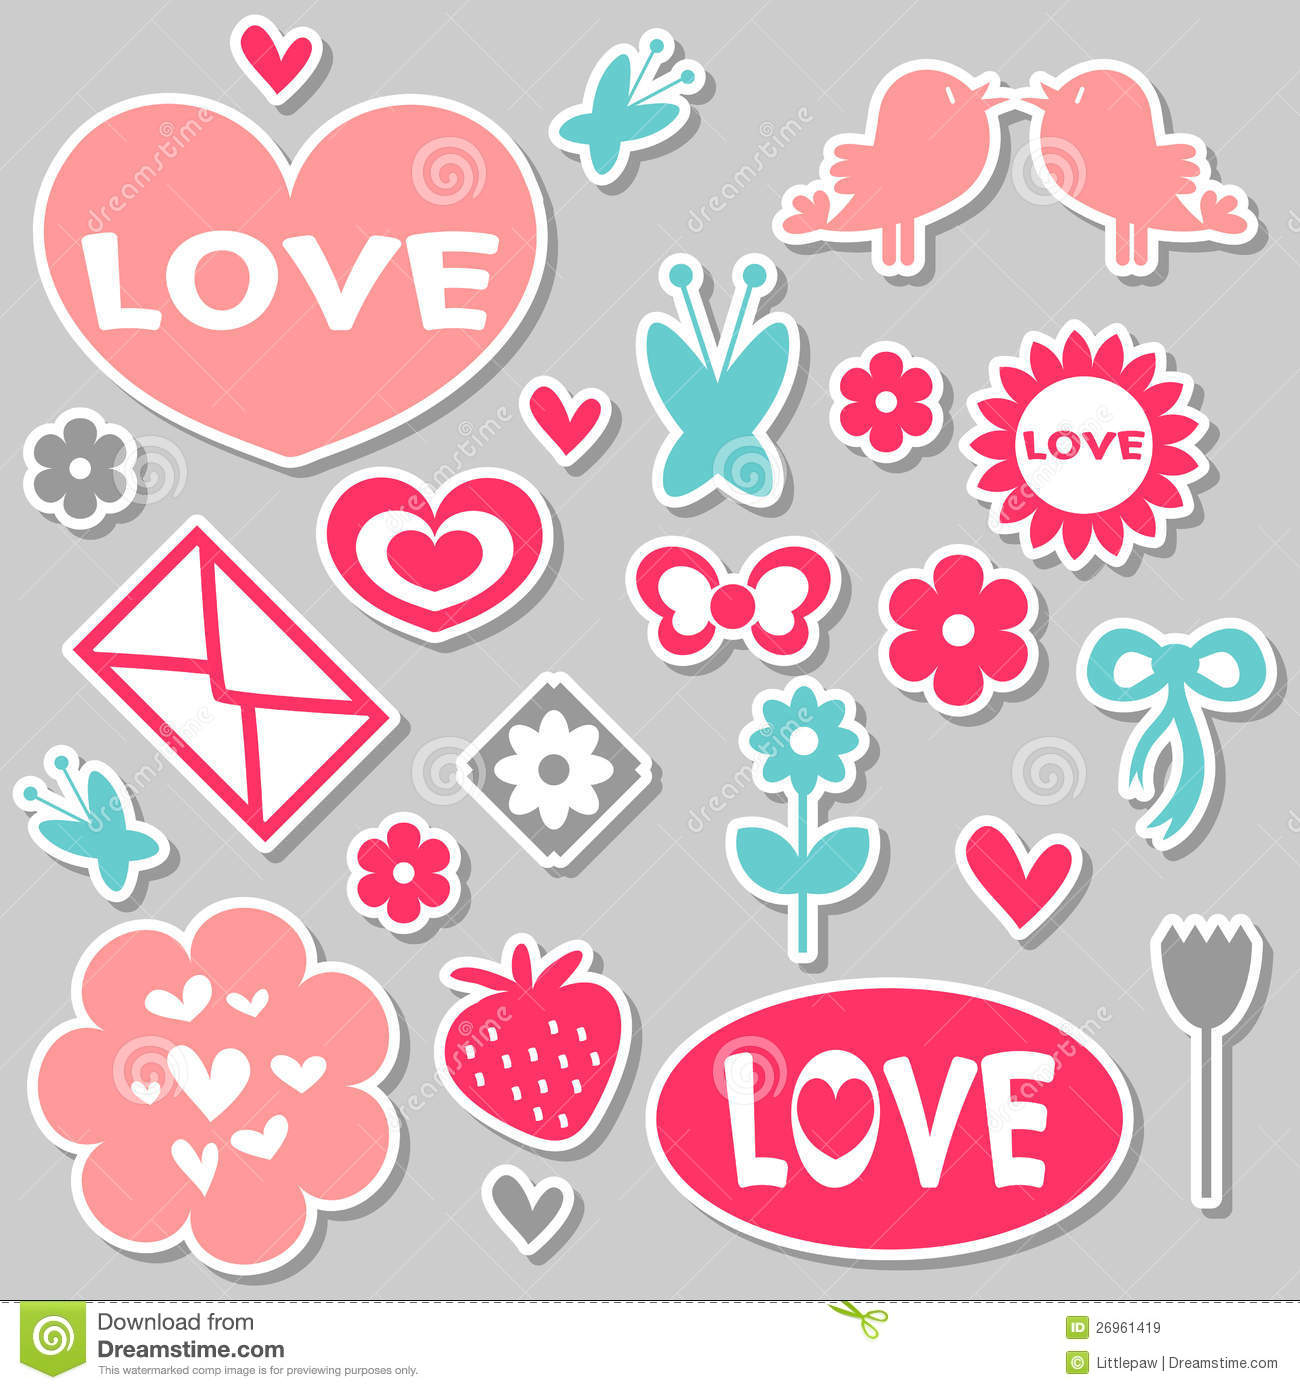 Beautiful romantic stickers